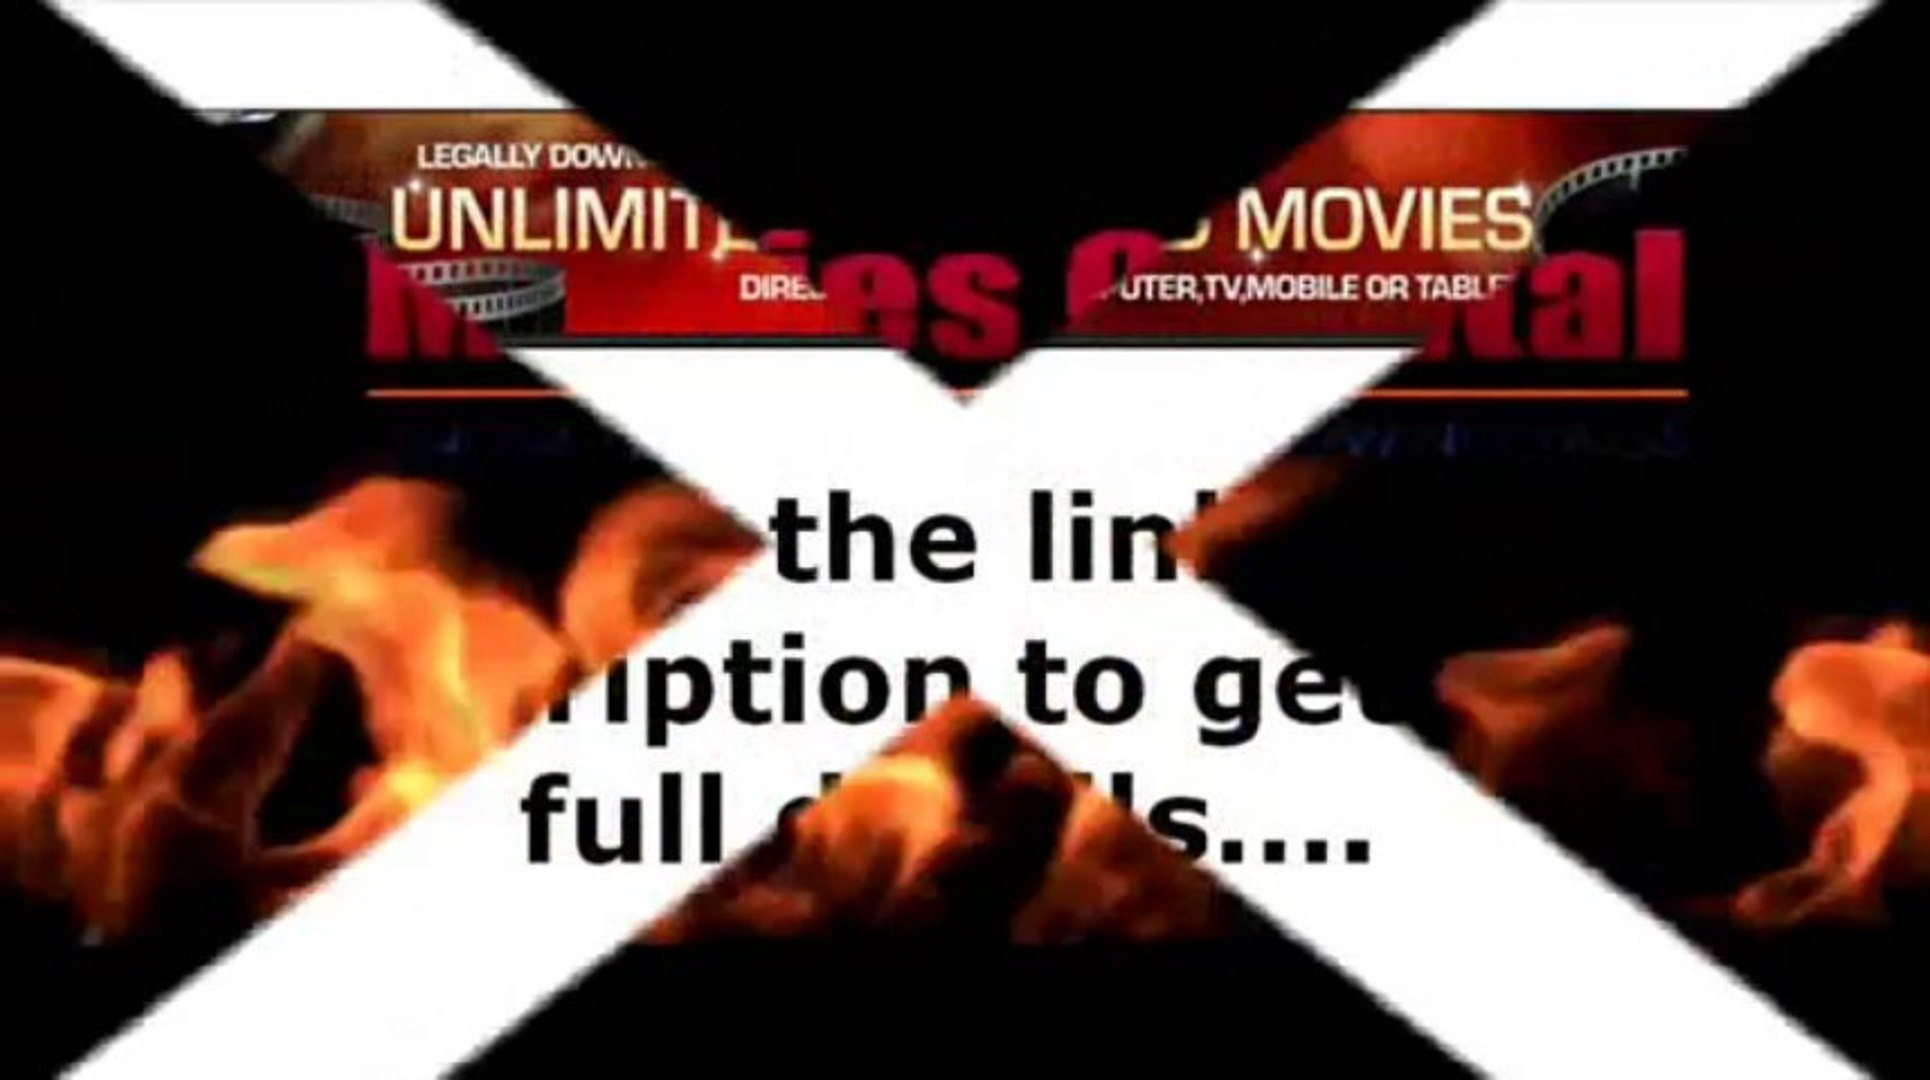 Movies Capital: Where to Legally Download or Stream Full Unlimited Movies Online